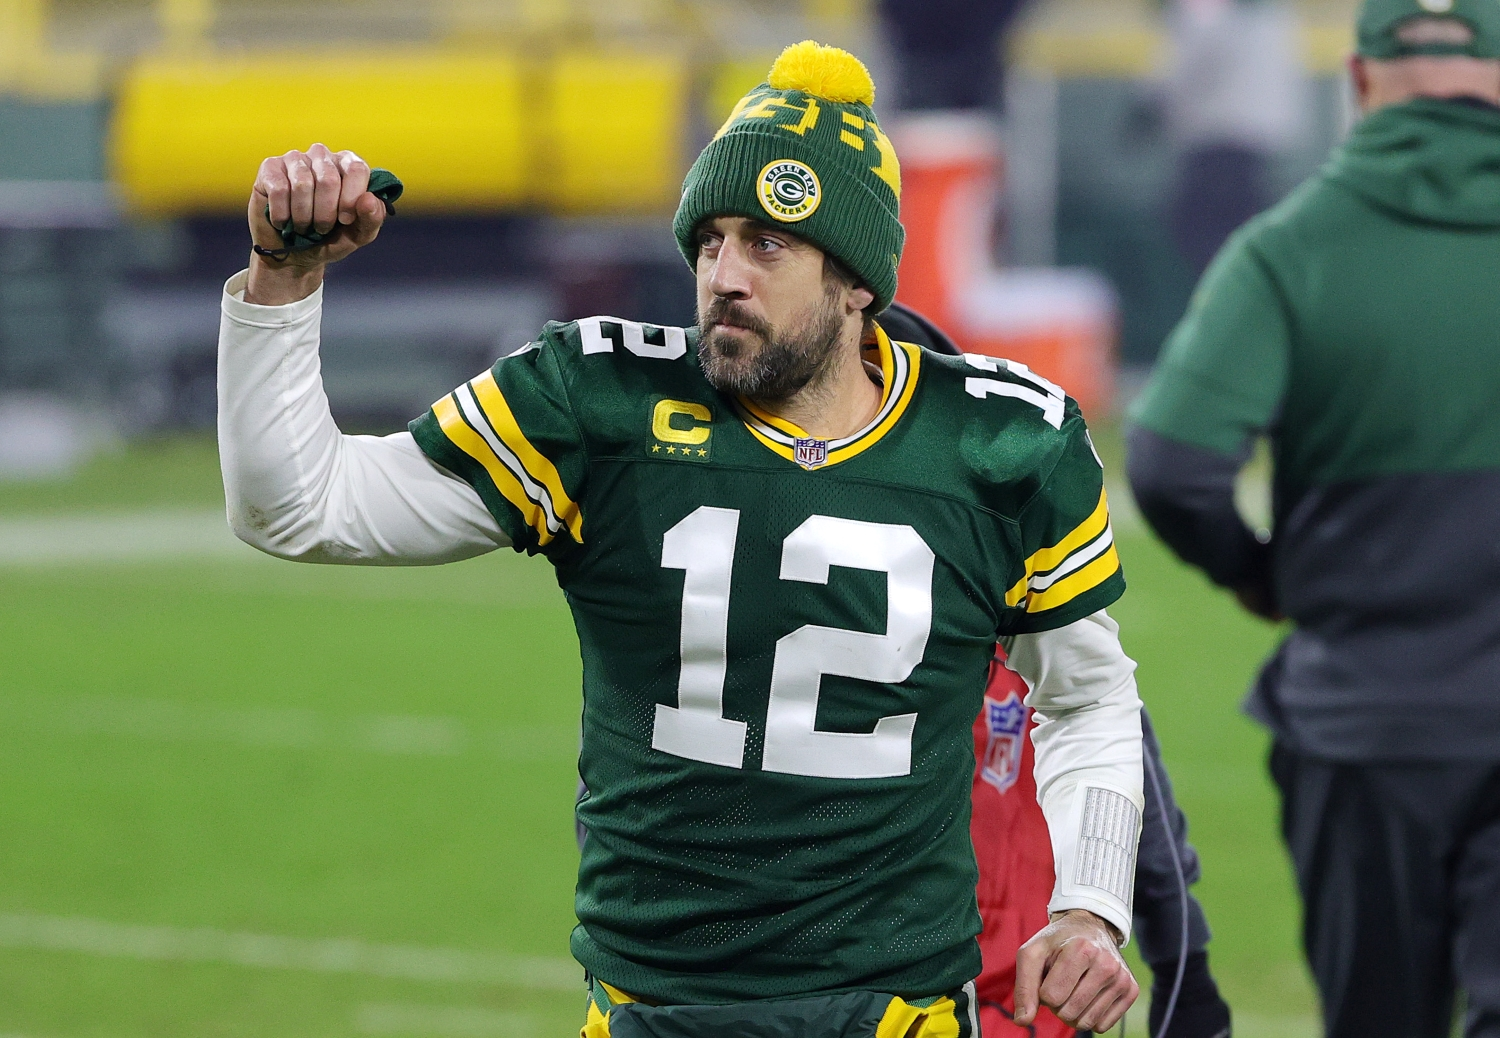 Aaron Rodgers of the Green Bay Packers celebrates defeating the Los Angeles Rams 32-18 in the NFC Divisional Playoff game.